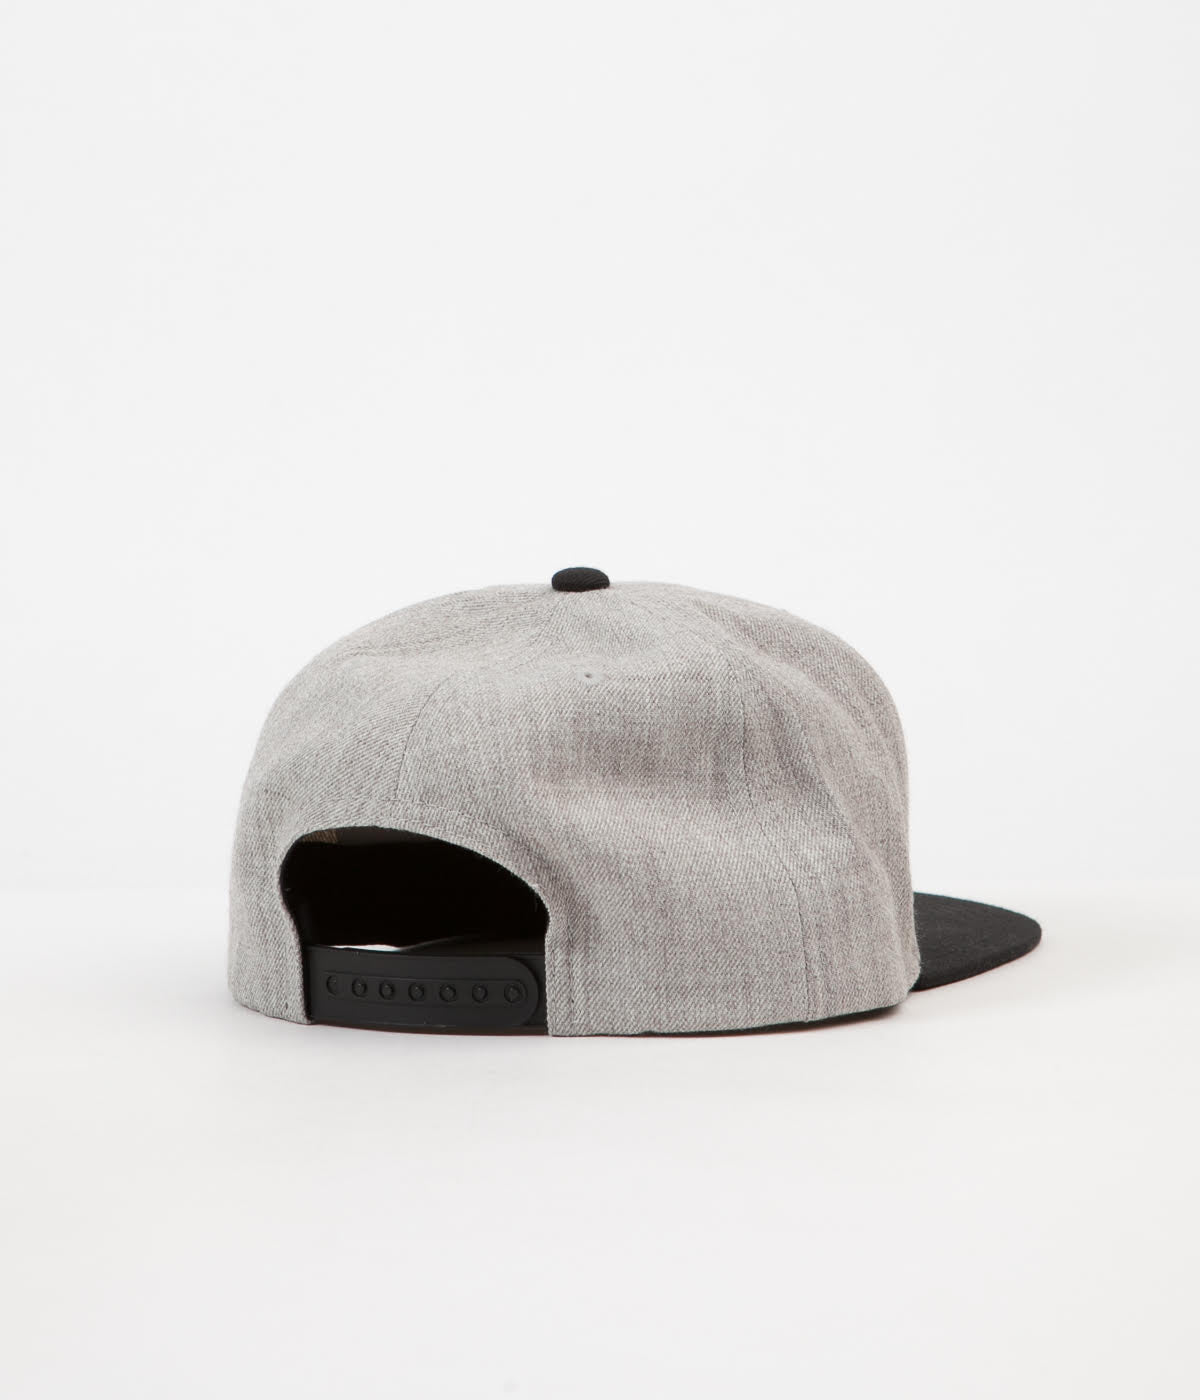 Brixton Oath III Snapback Cap - Heather Grey / Black